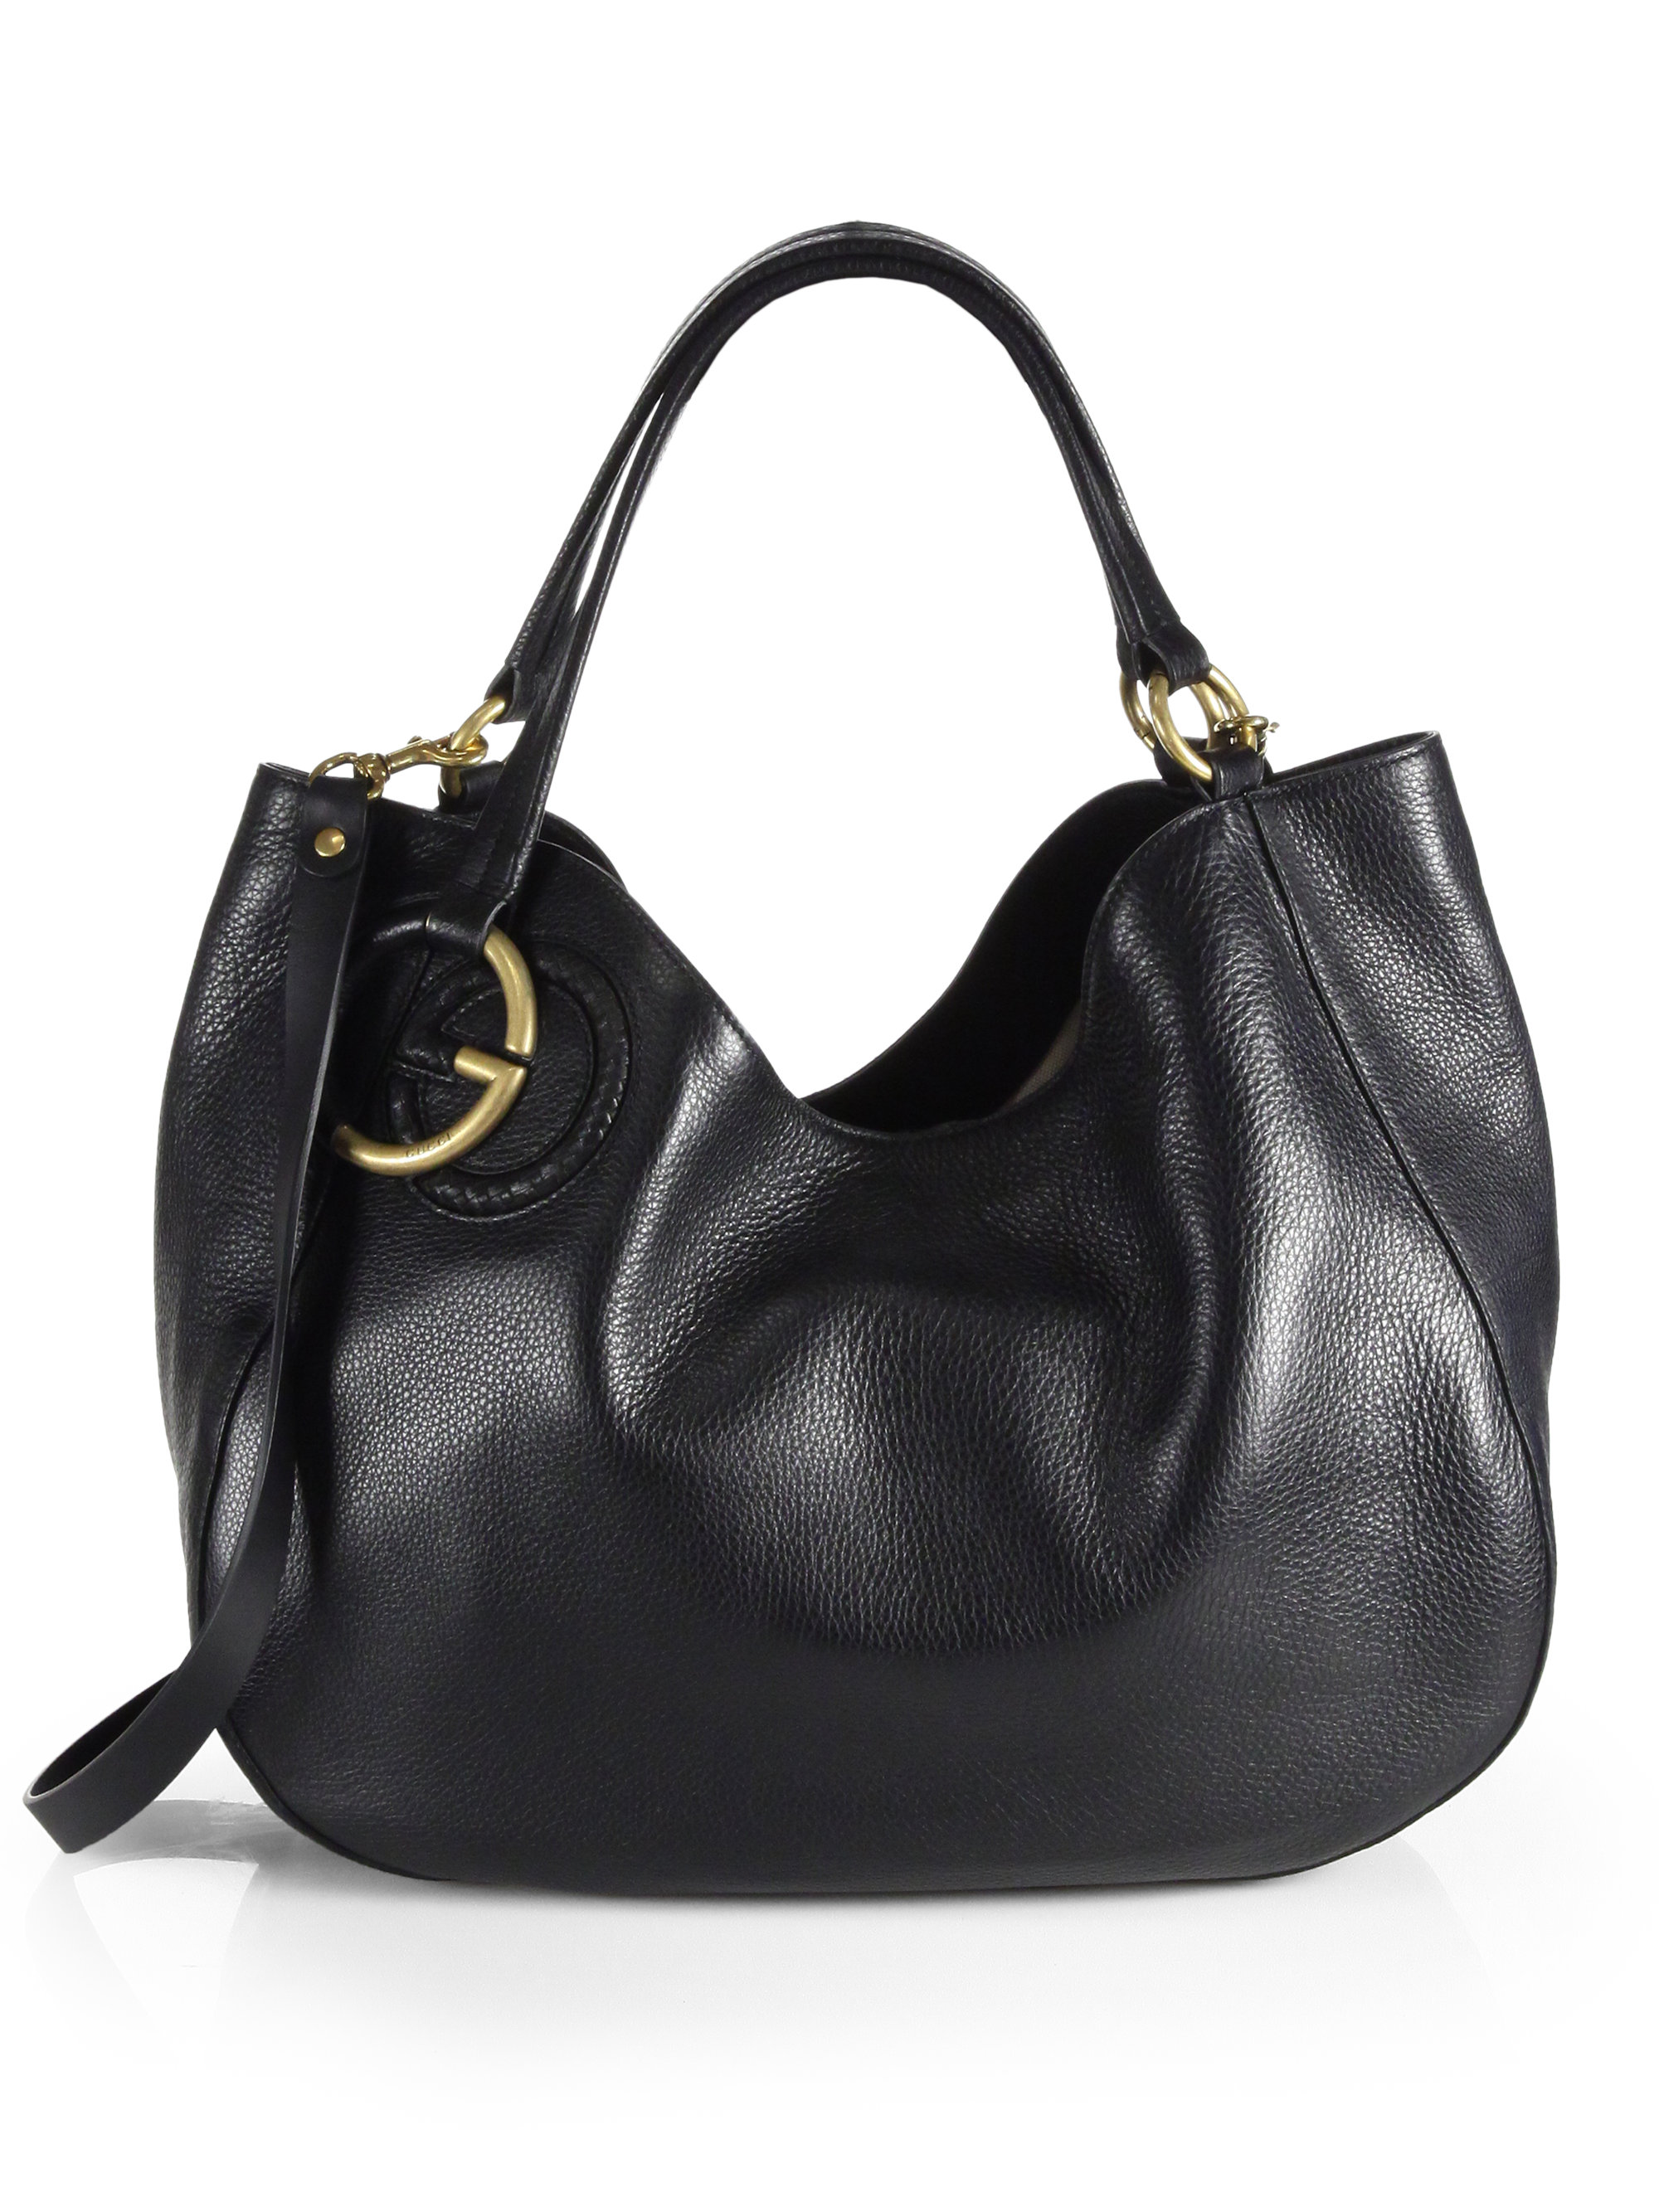 Gucci Twill Leather Medium Shoulder Bag in Black | Lyst